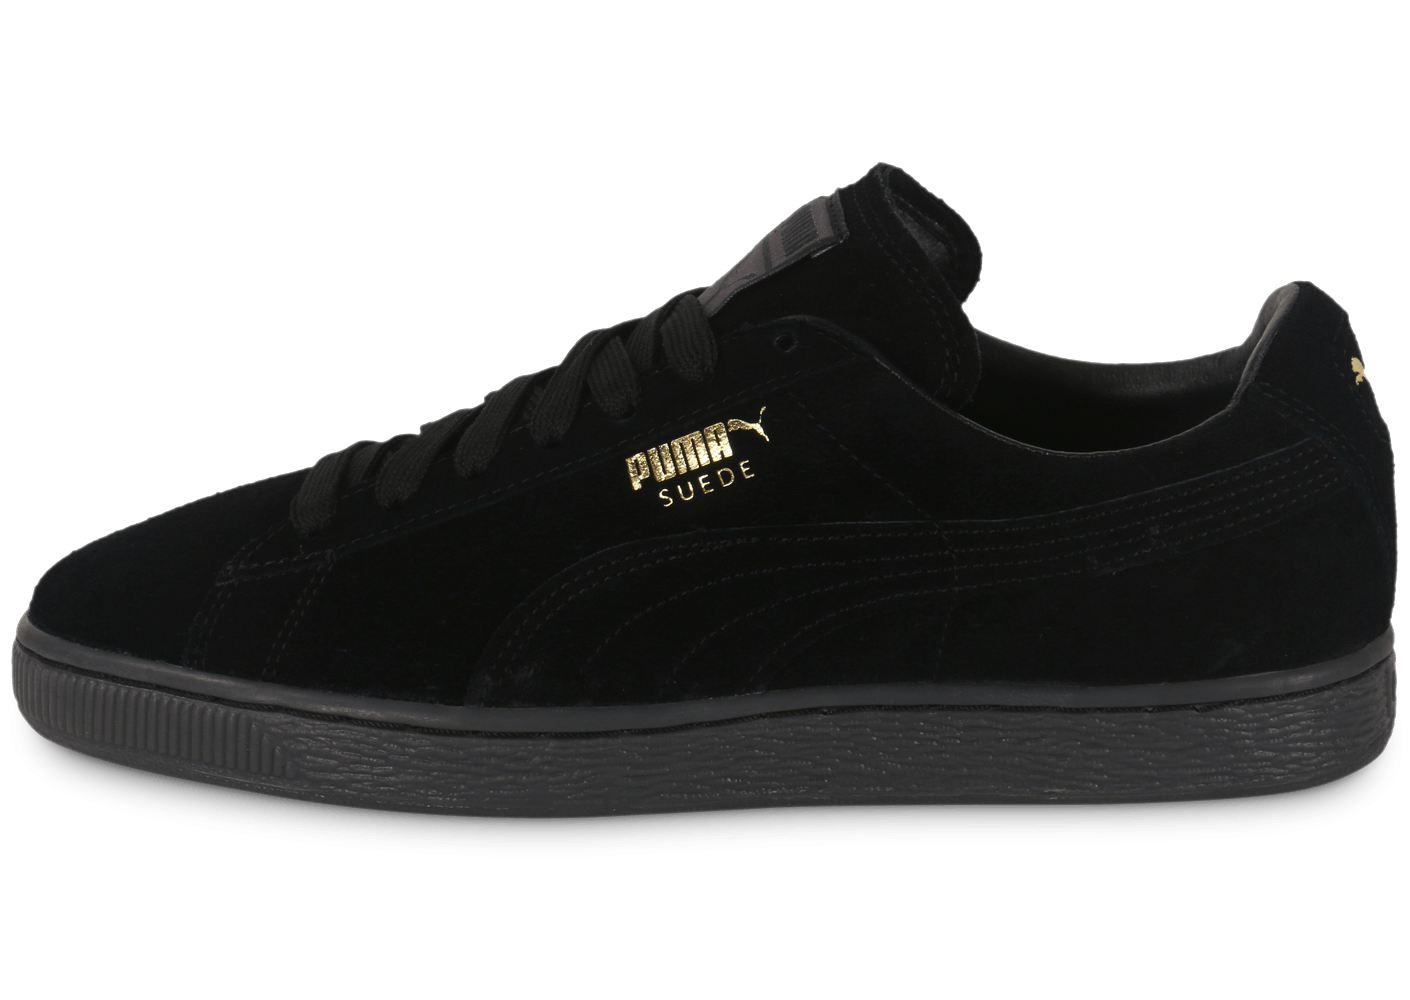 Chaussures Puma Lacets